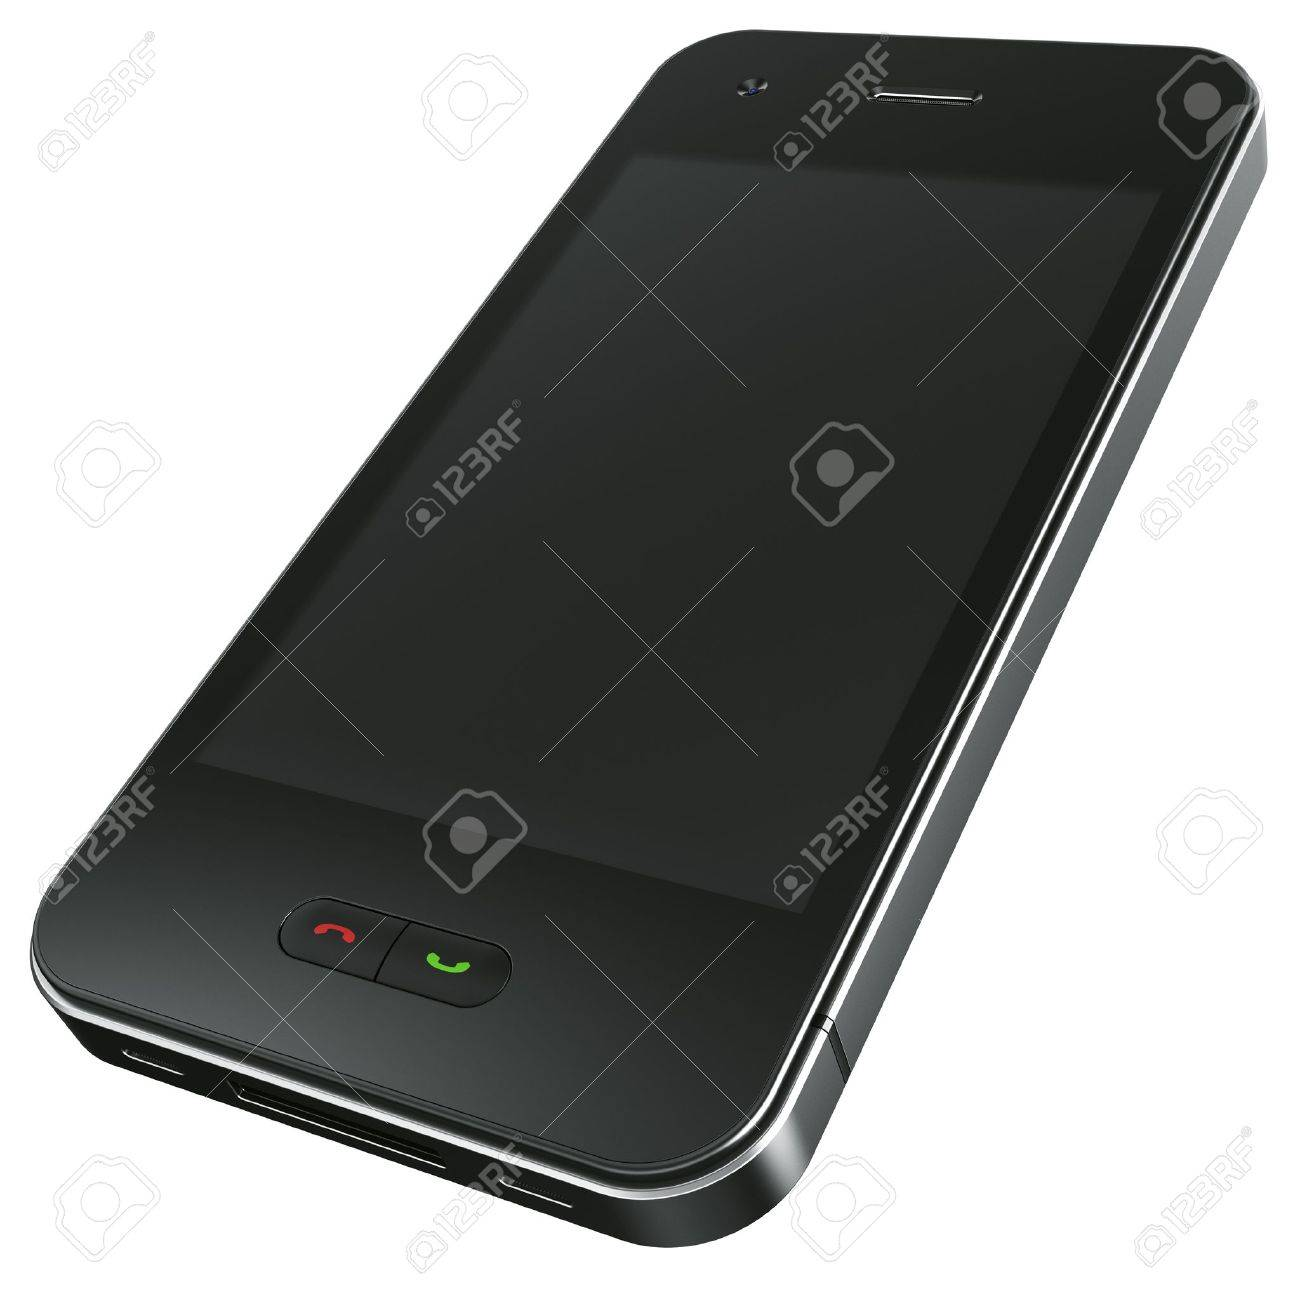 3d rendering of a Mobile Phone - 9136658